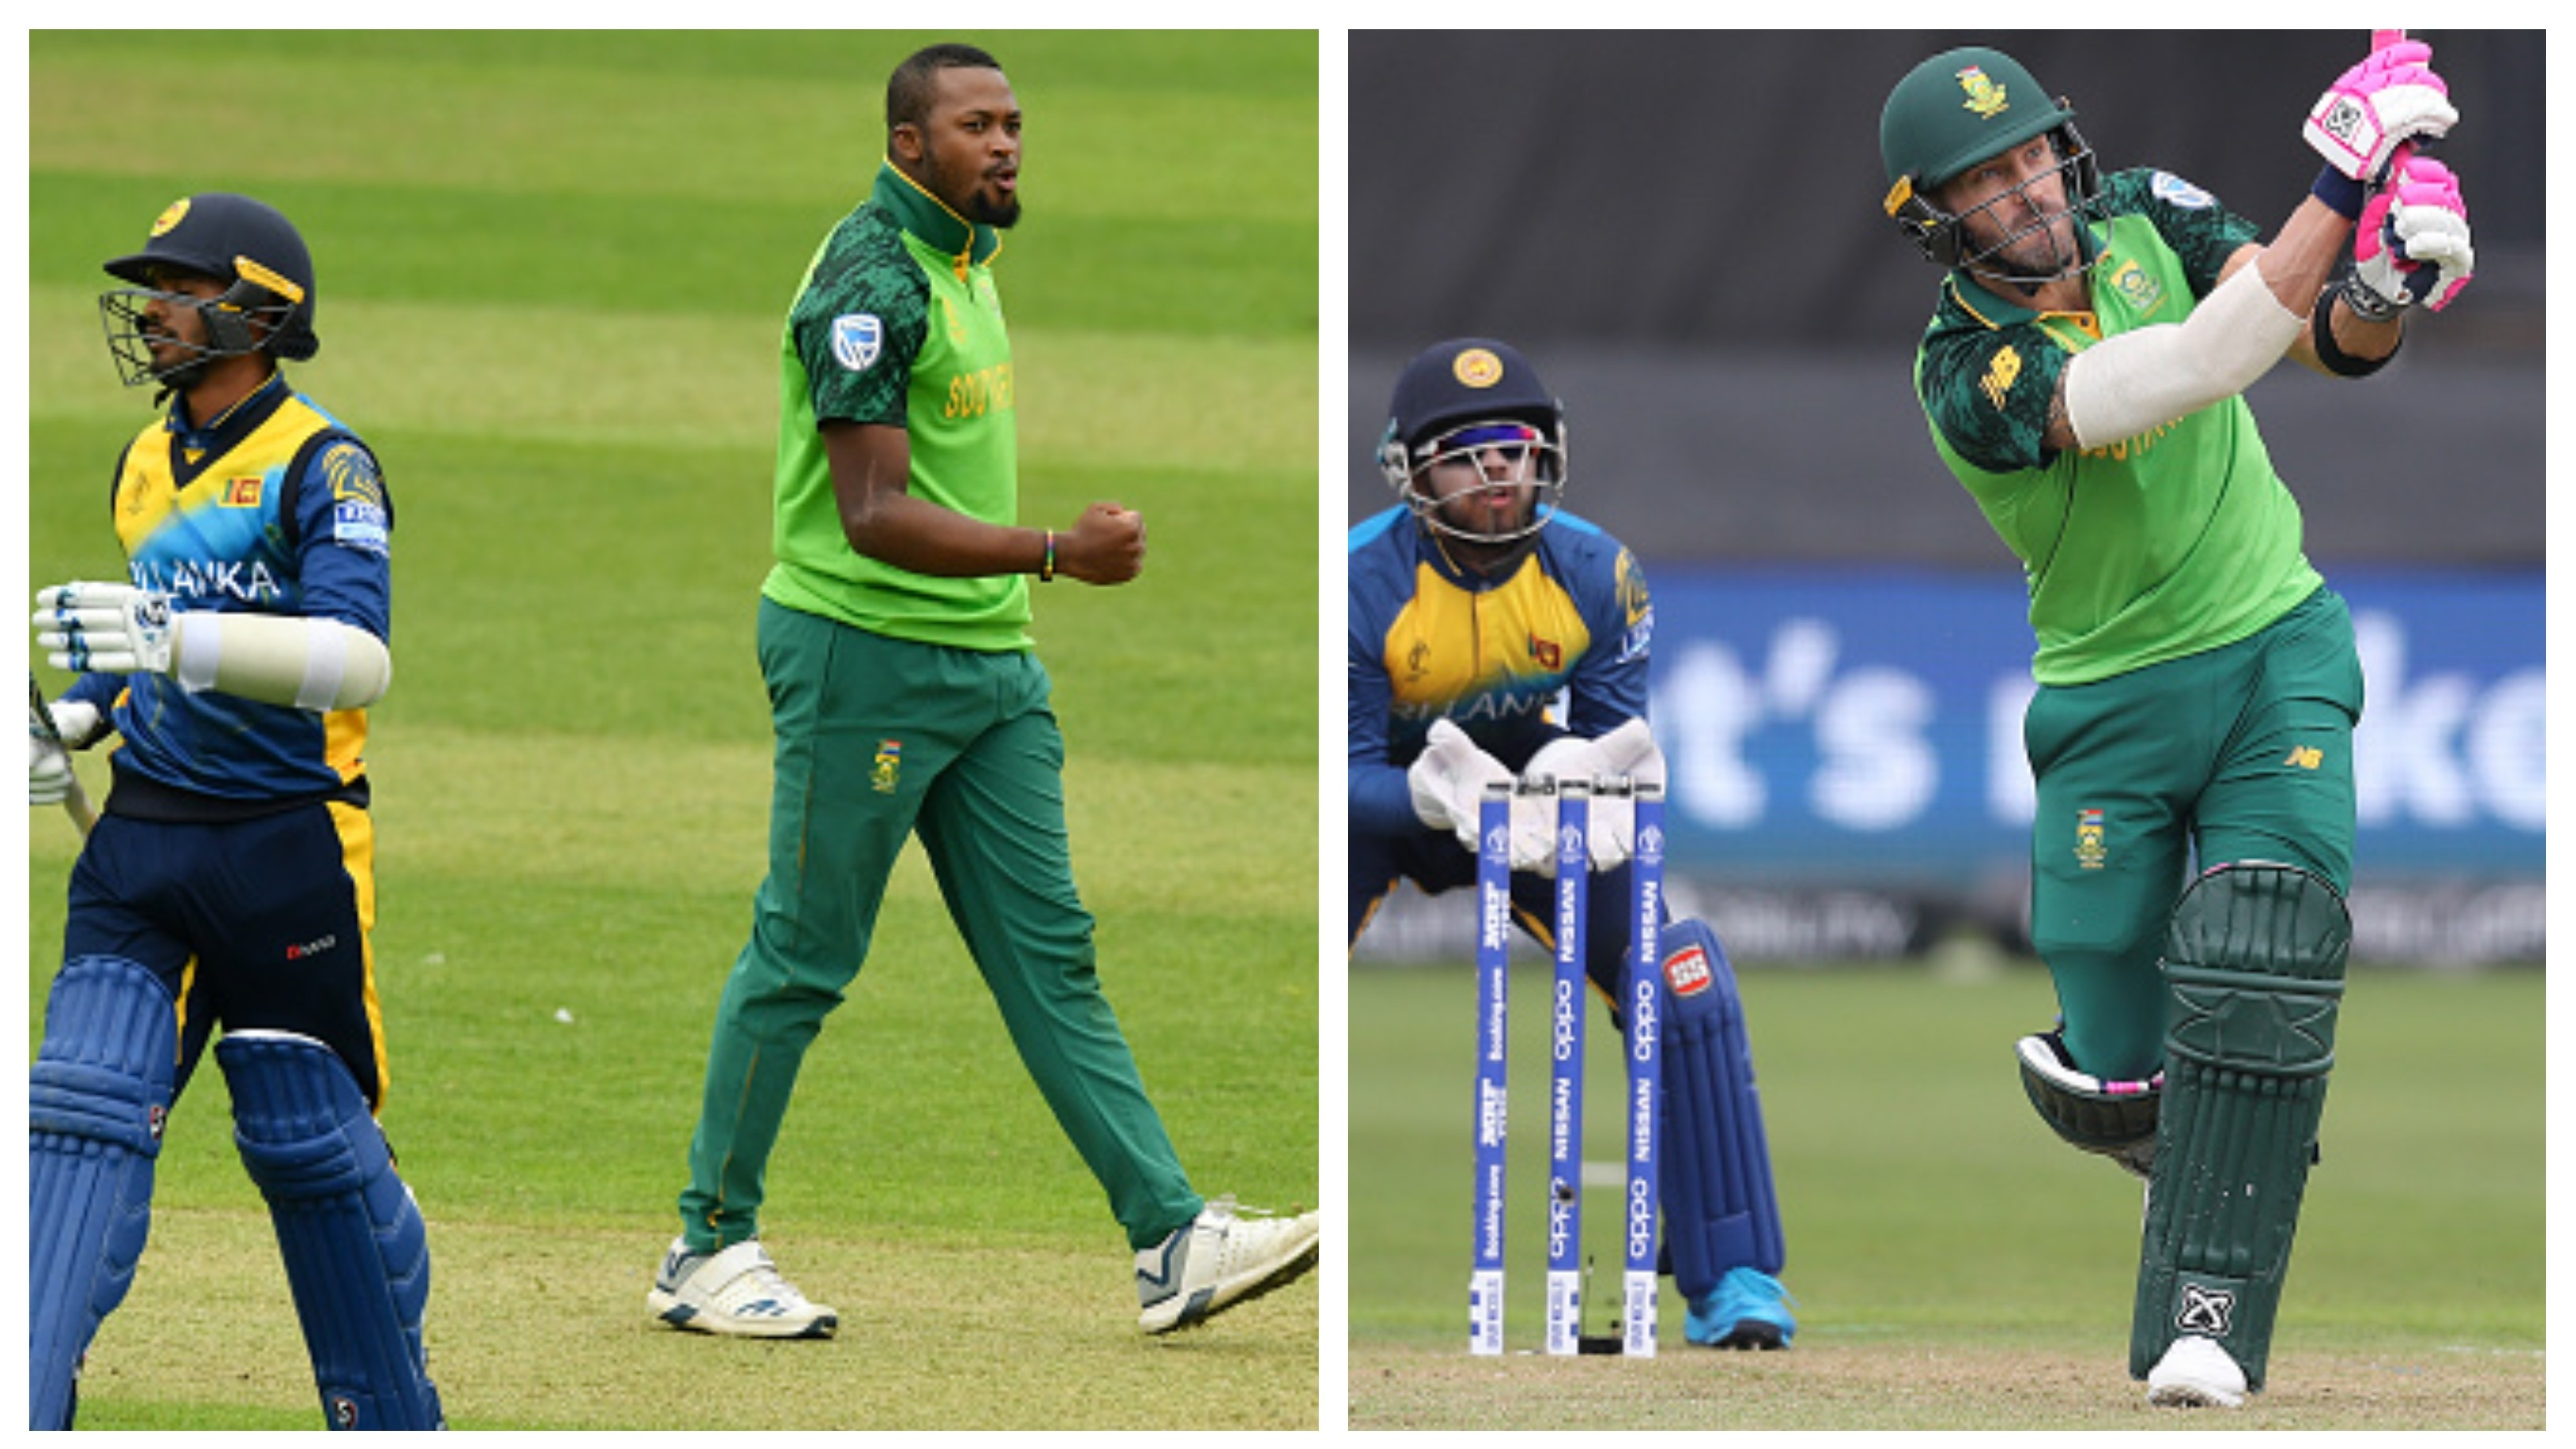 CWC 2019: Phehlukwayo's stellar spell, Du Plessis' blazing fifty power South Africa to a thumping win over Sri Lanka